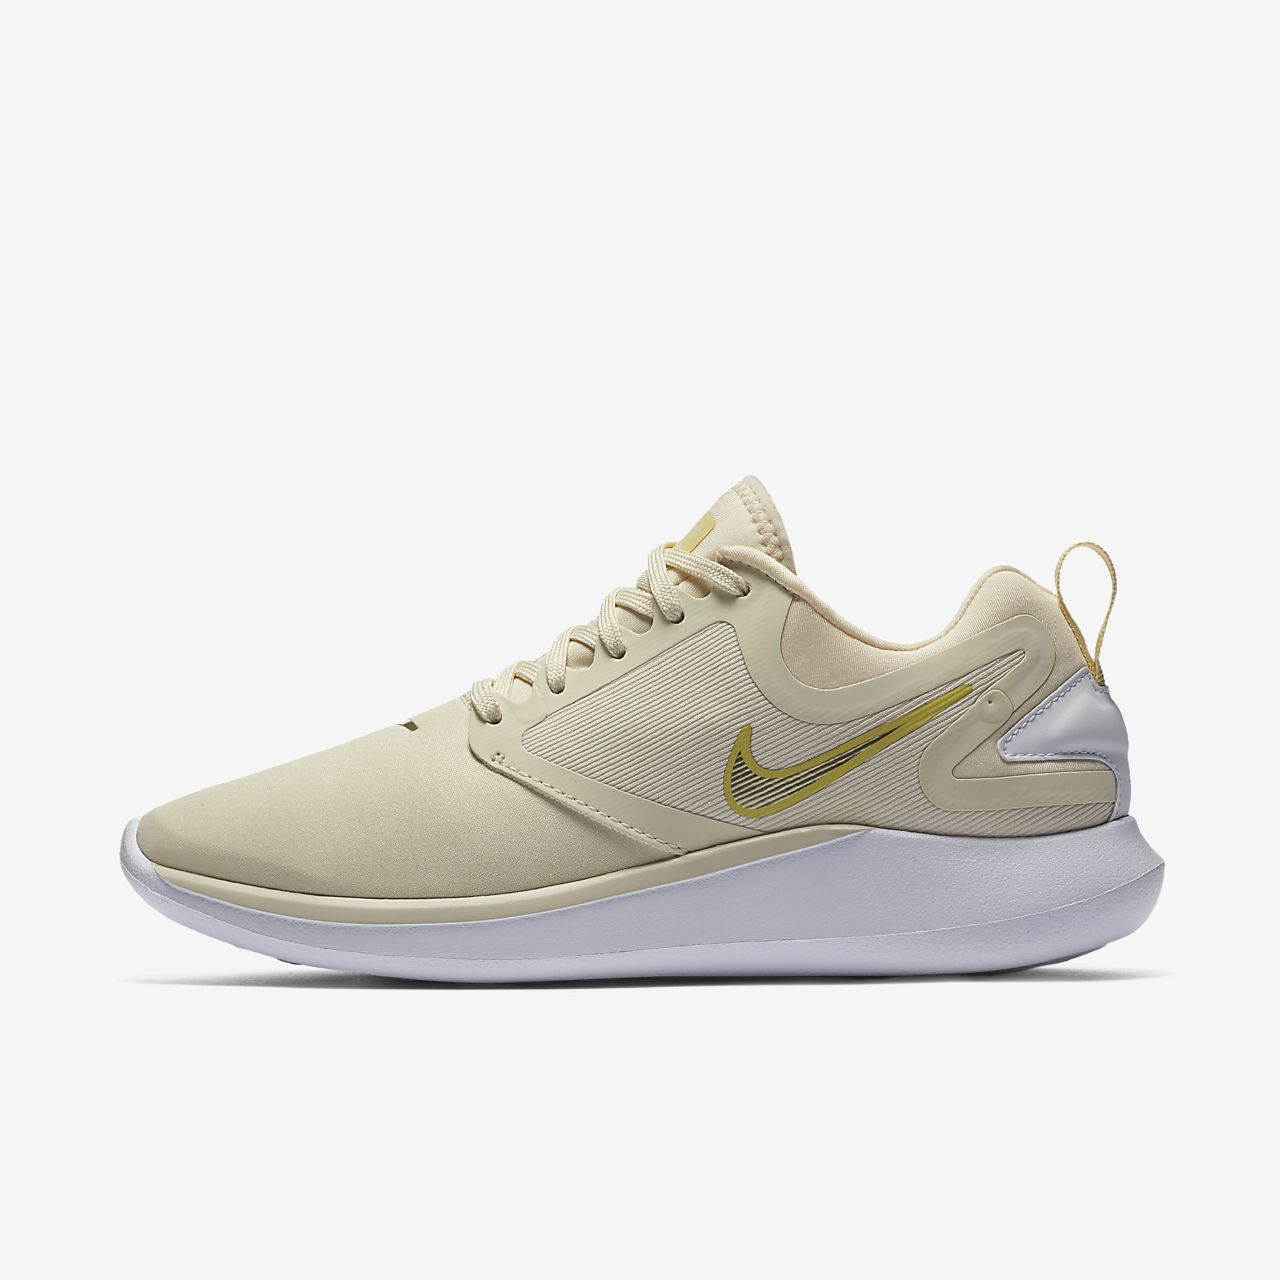 Nike Flex 2018 RN Summer Damen-Laufschuh - Cream Eg101